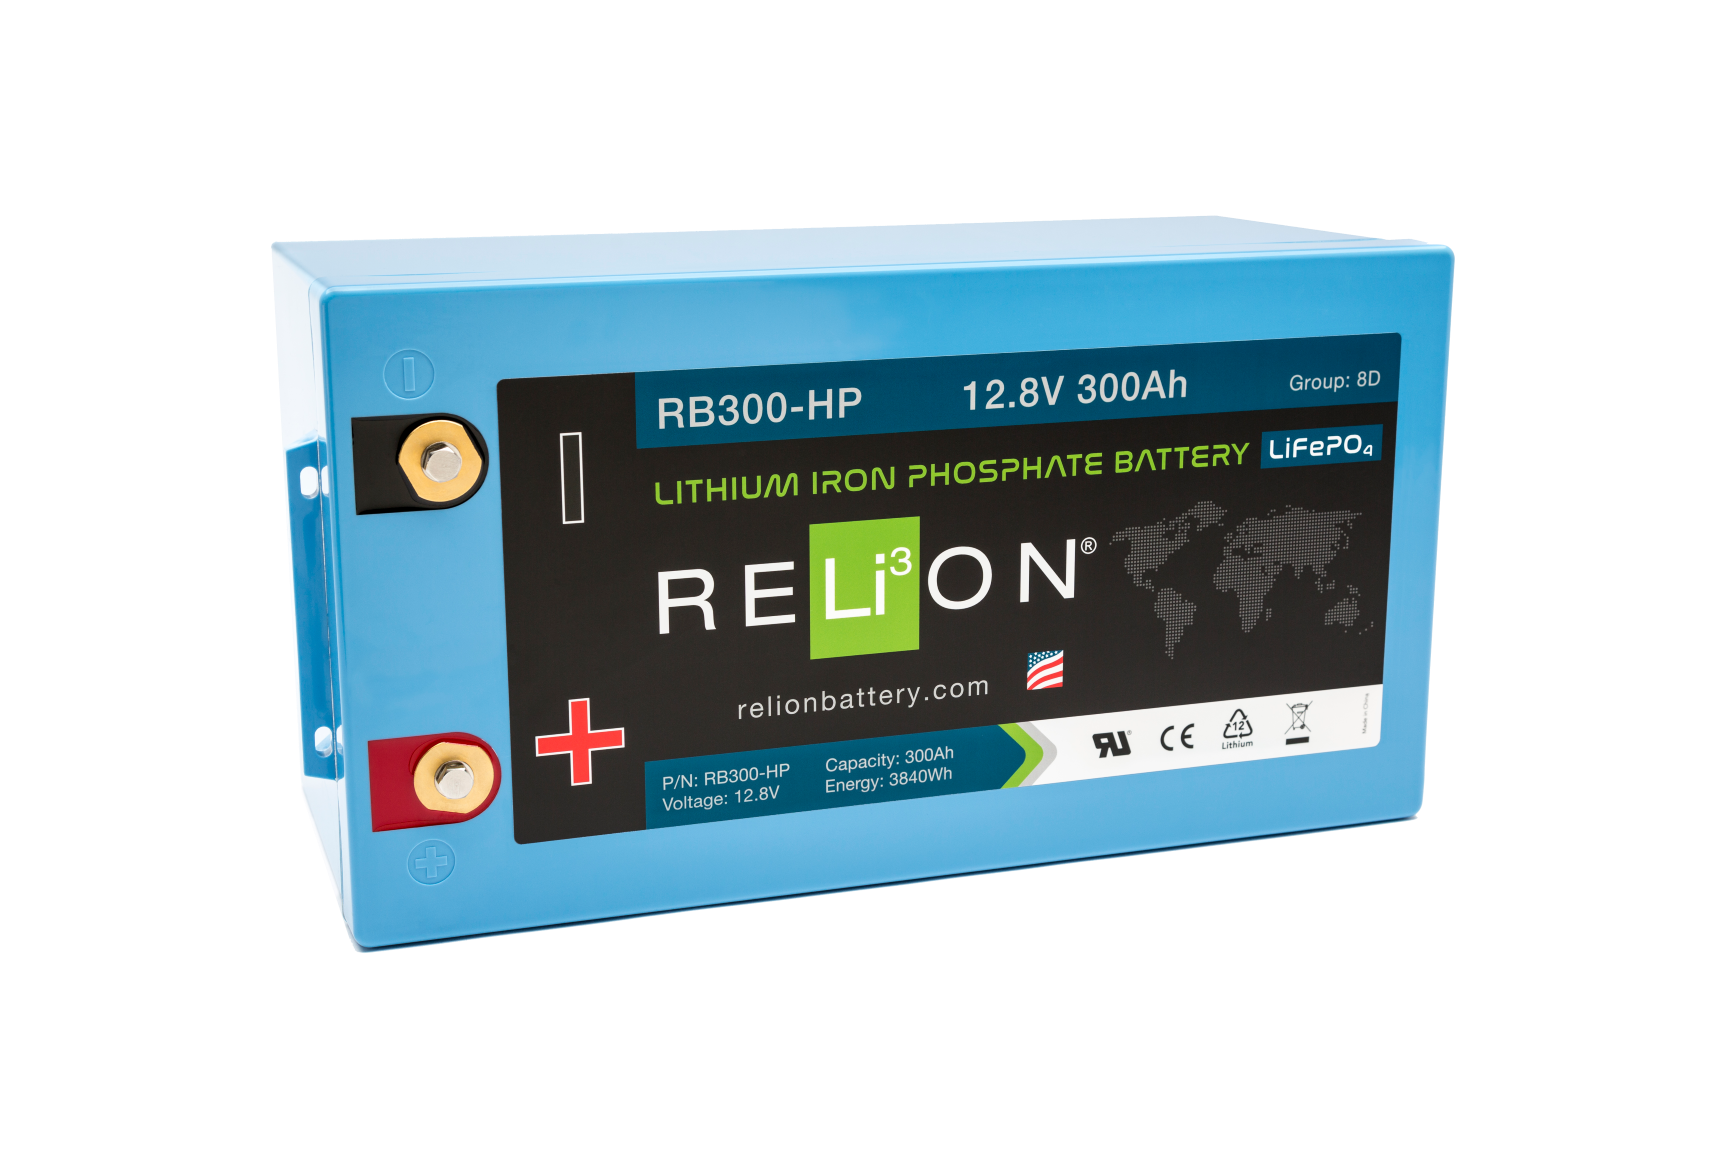 RB300-HP RELiON lithium battery 300Ah 12V